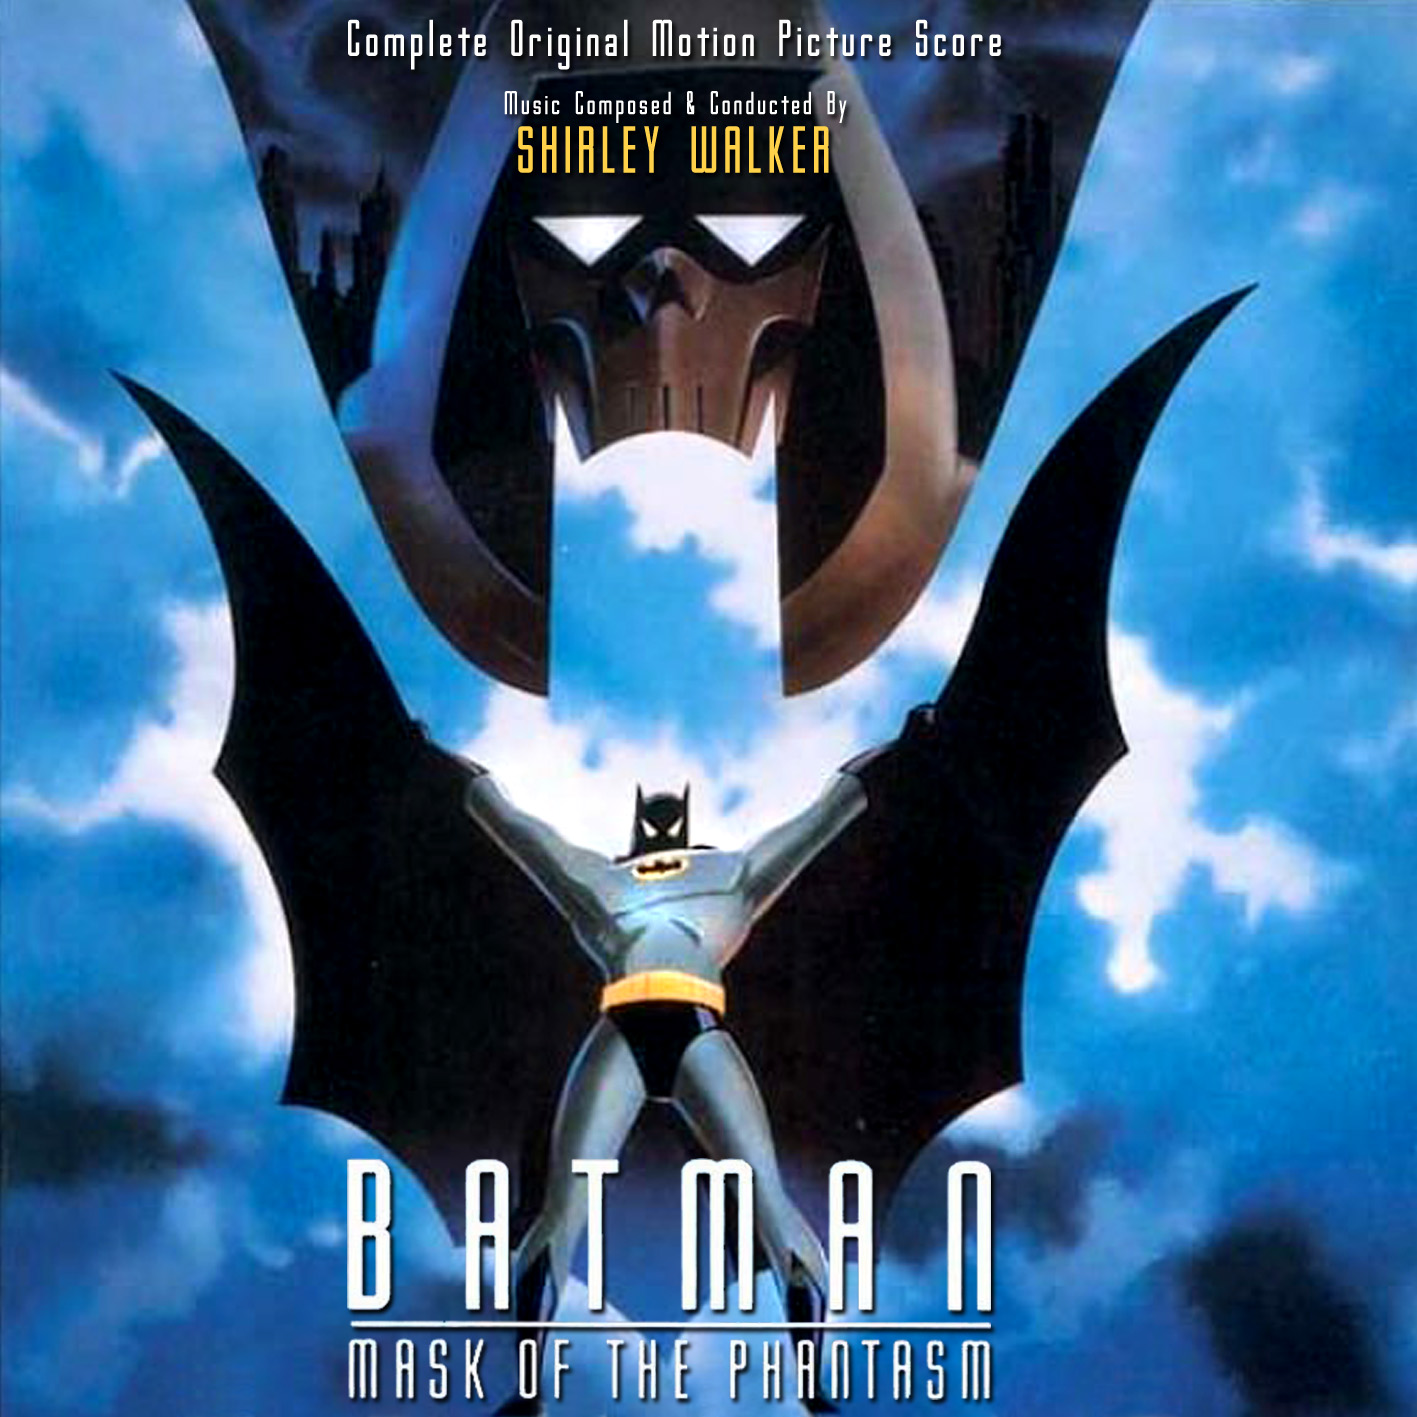 Batman: Mask of the Phantasm - Complete Original Motion Picture Score Gallery